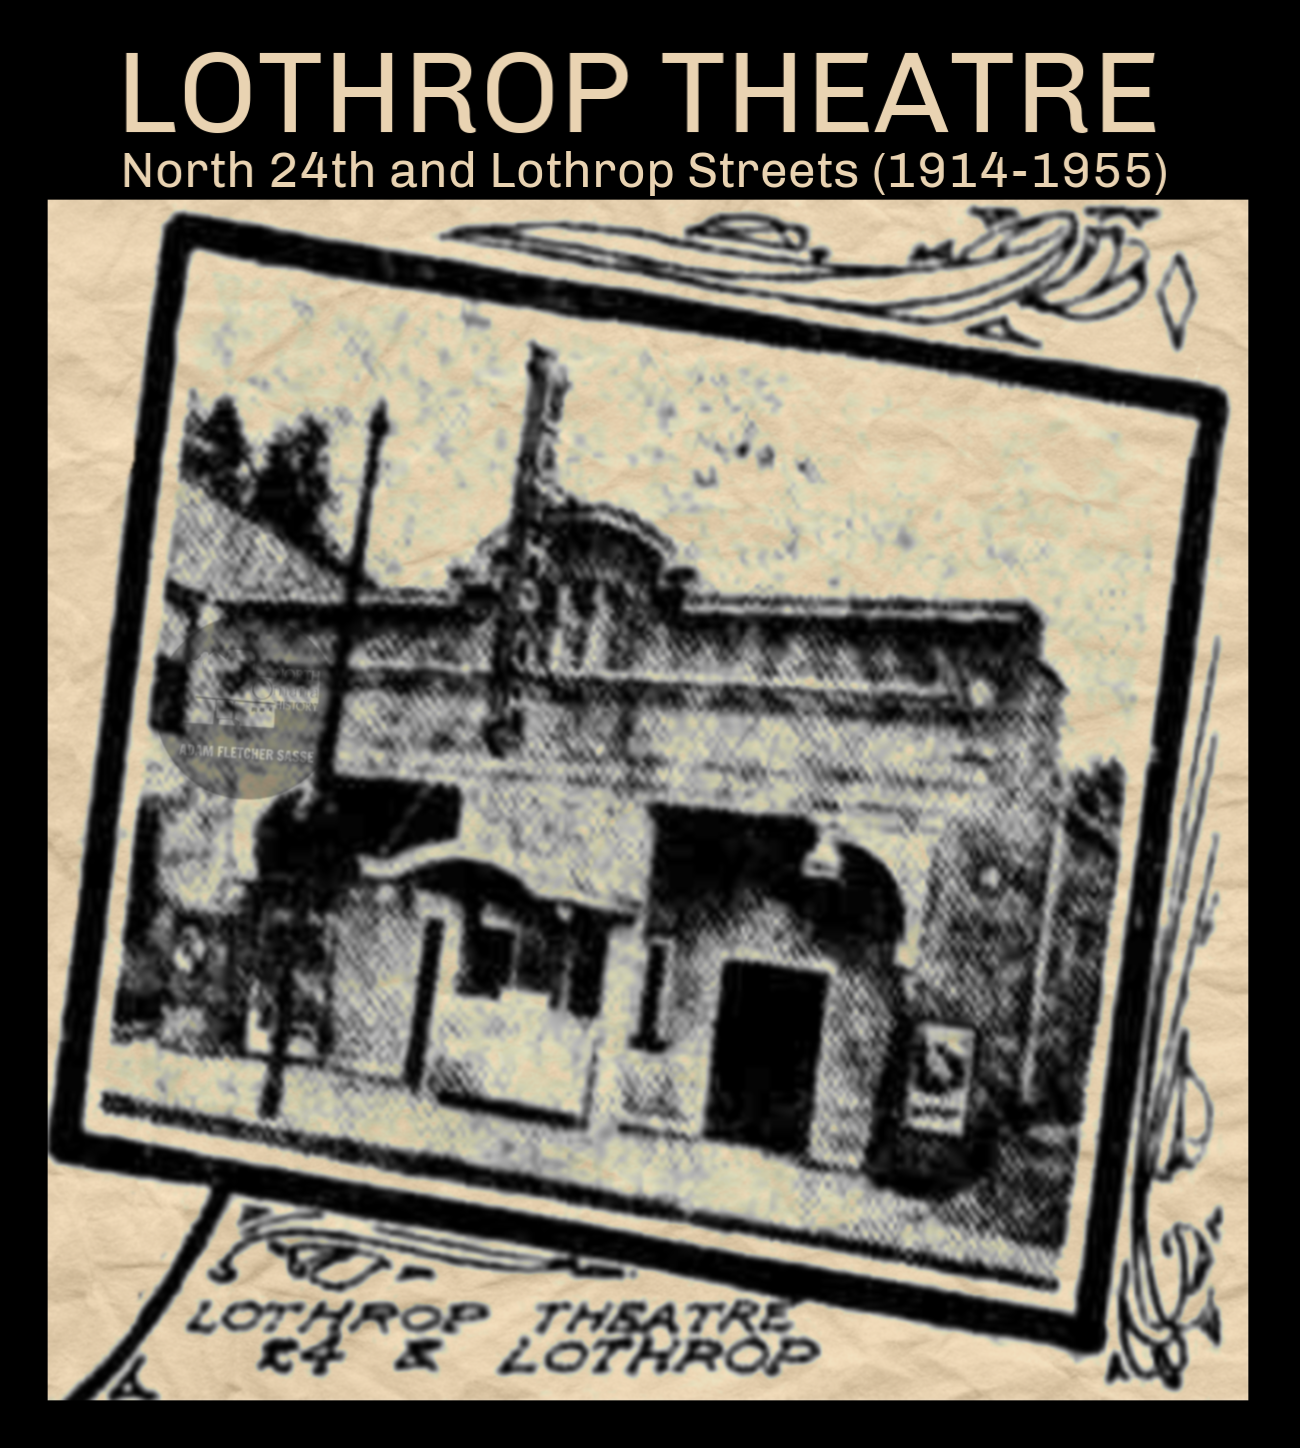 Lothrop Theatre, North 24th and Lothrop Streets, North Omaha, Nebraska